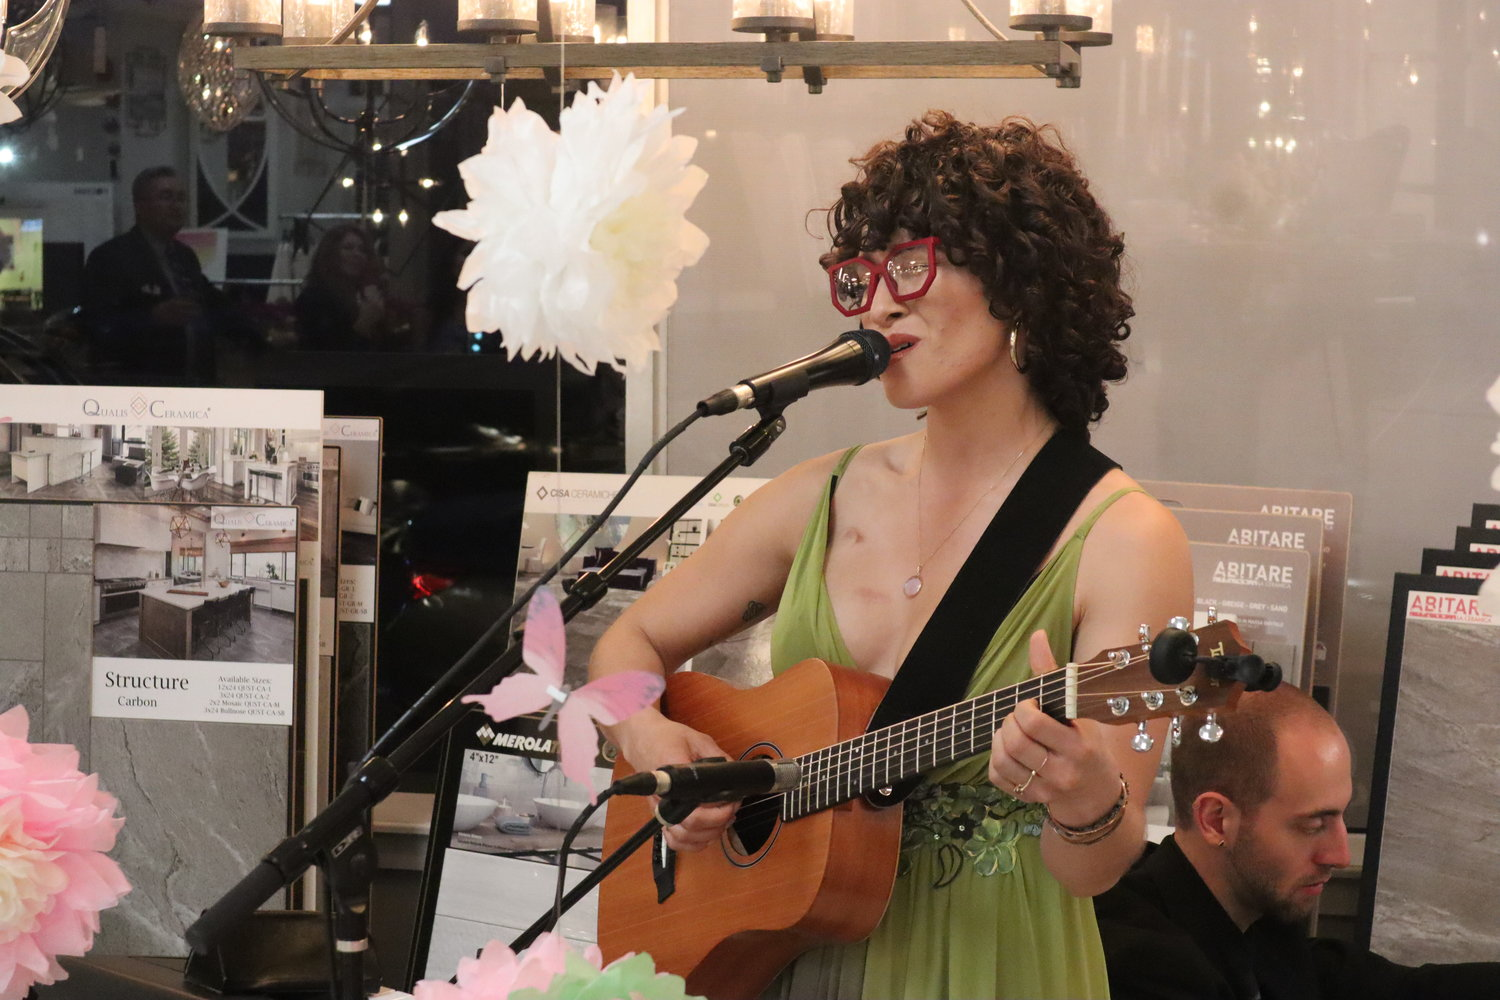 Bianca Muñiz performed original songs of hope and love at a fundraiser to support women under 40 with breast cancer. Patricia Salcedo, a survivor of another sort, hosted the event at III View Designs and Construction, which she started when her former business was ravaged during Hurricane Sandy.